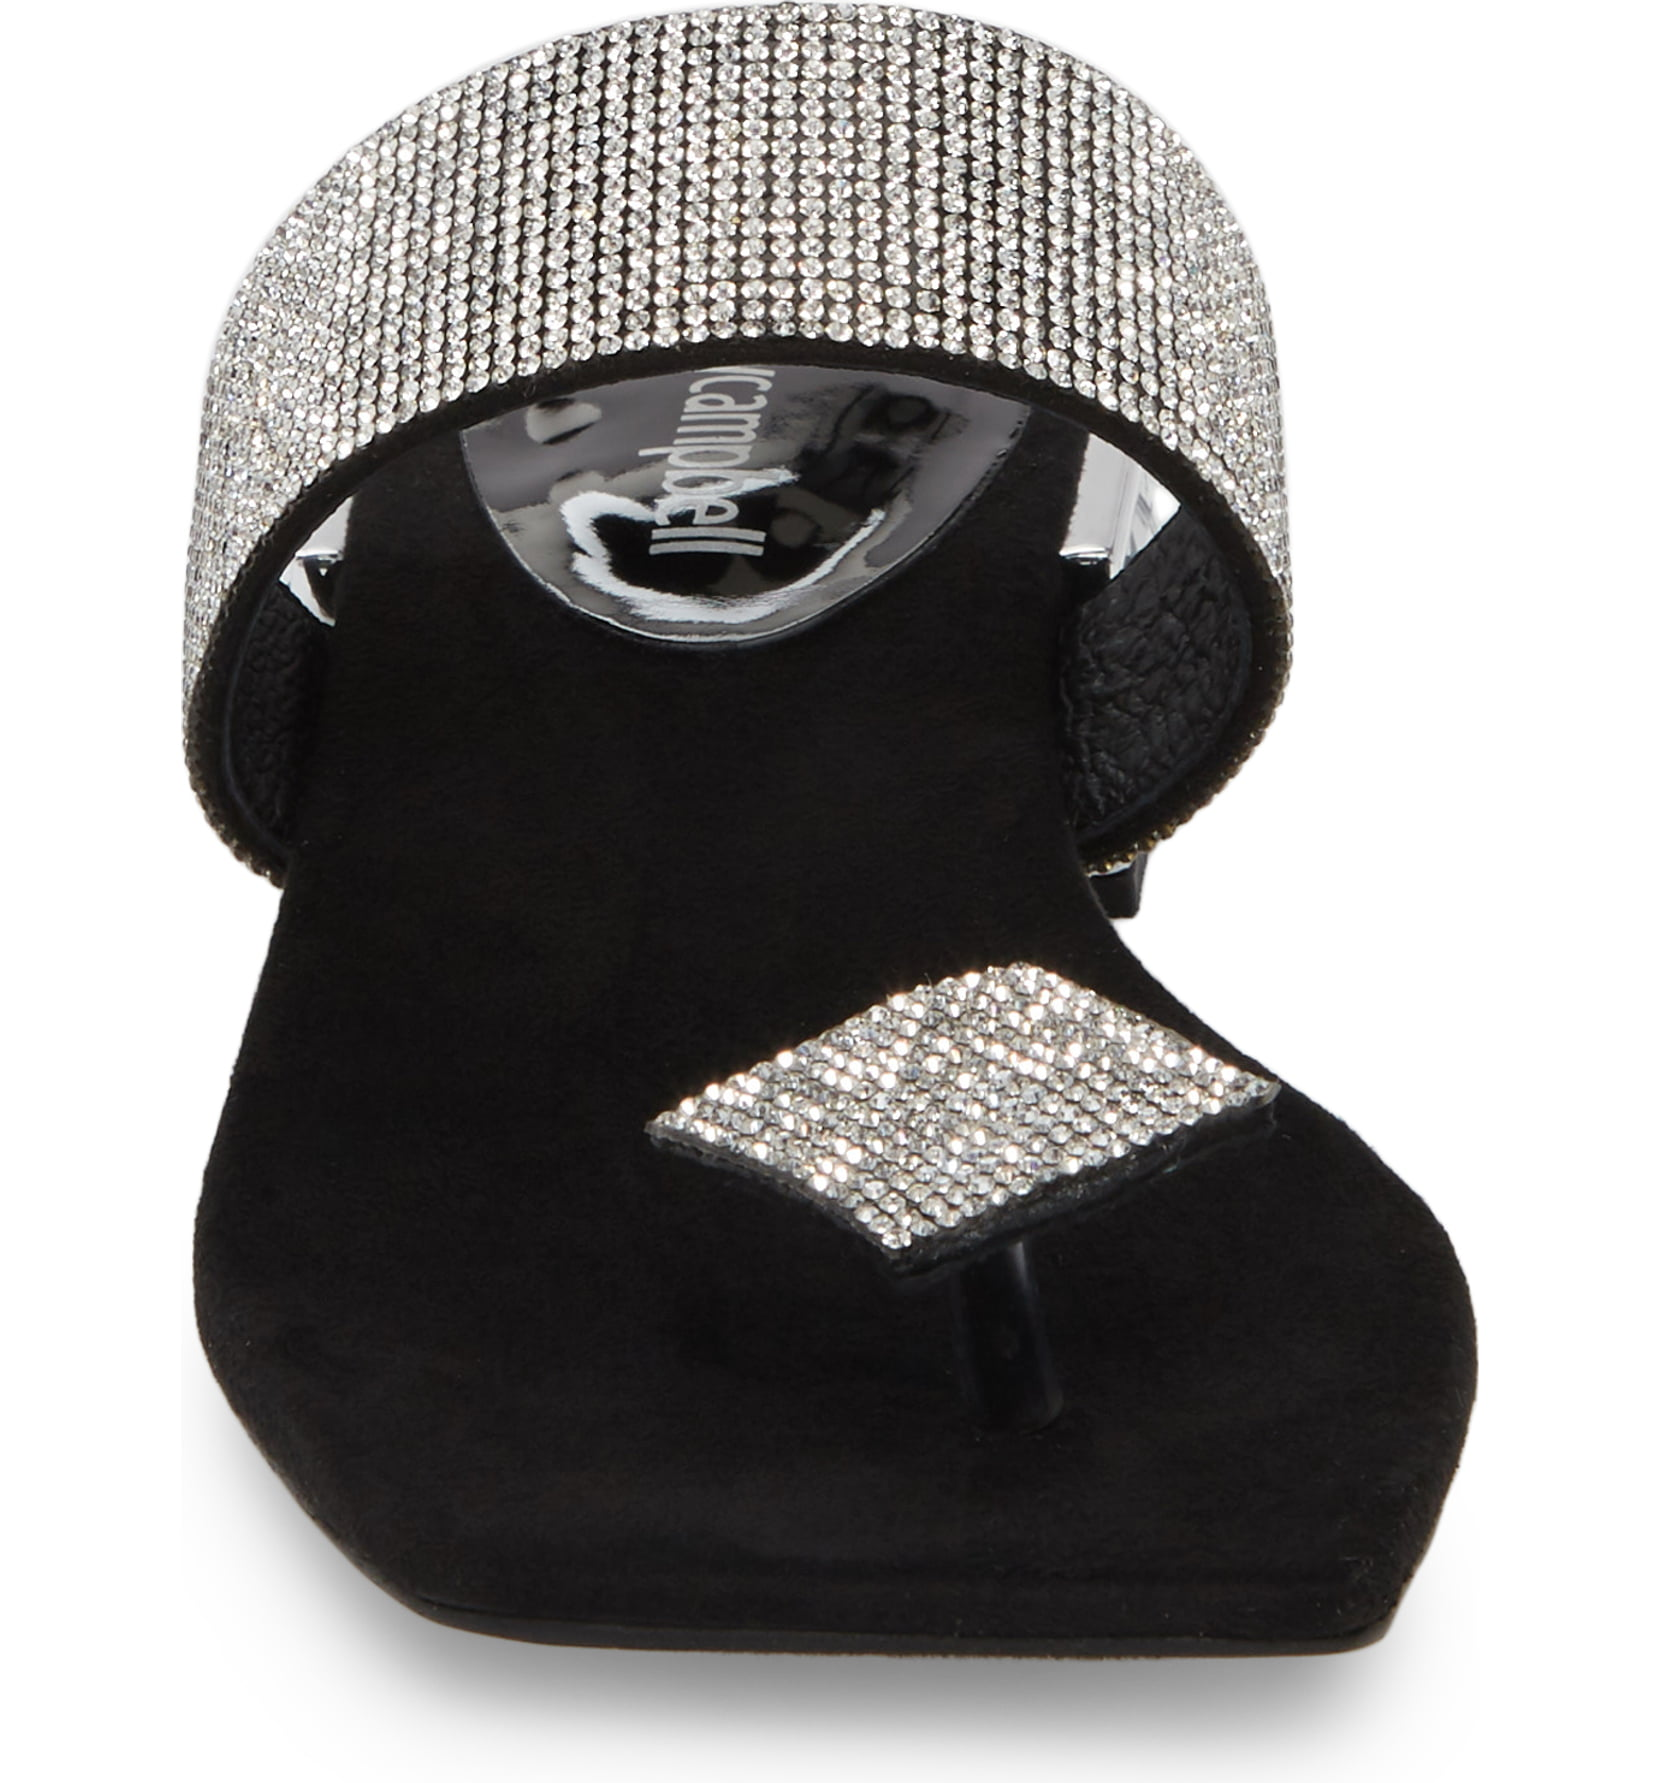 Jeffery-Campbell-ALISE-SH-Black-Silver-Embellished-Sandal-Jeweled-Square-Heel thumbnail 24